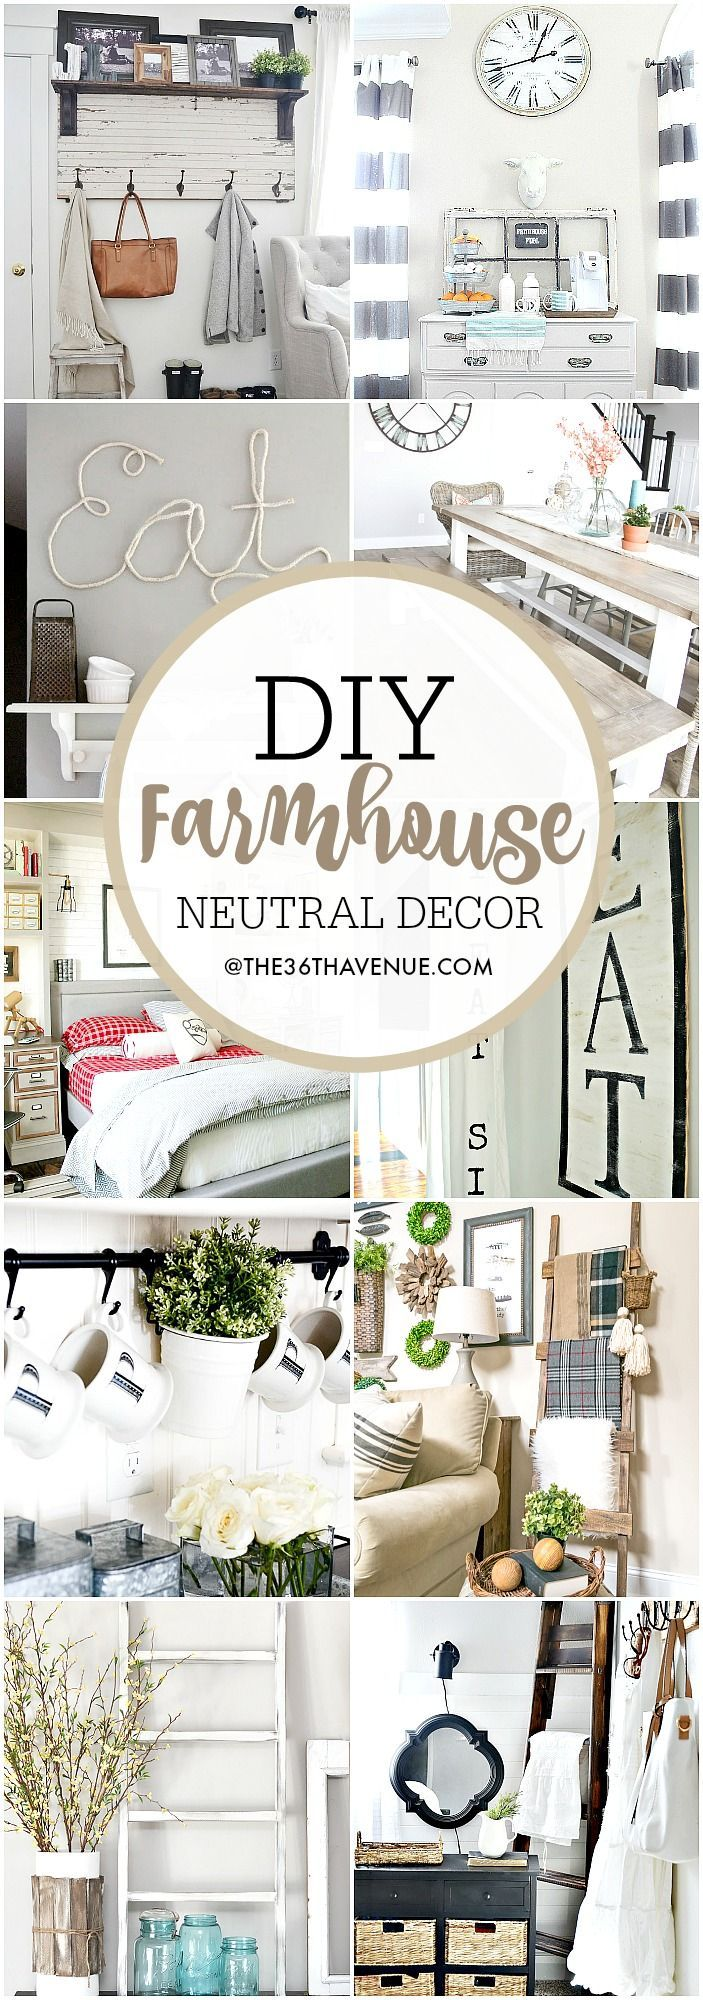 farmhouse diy home decor ideas